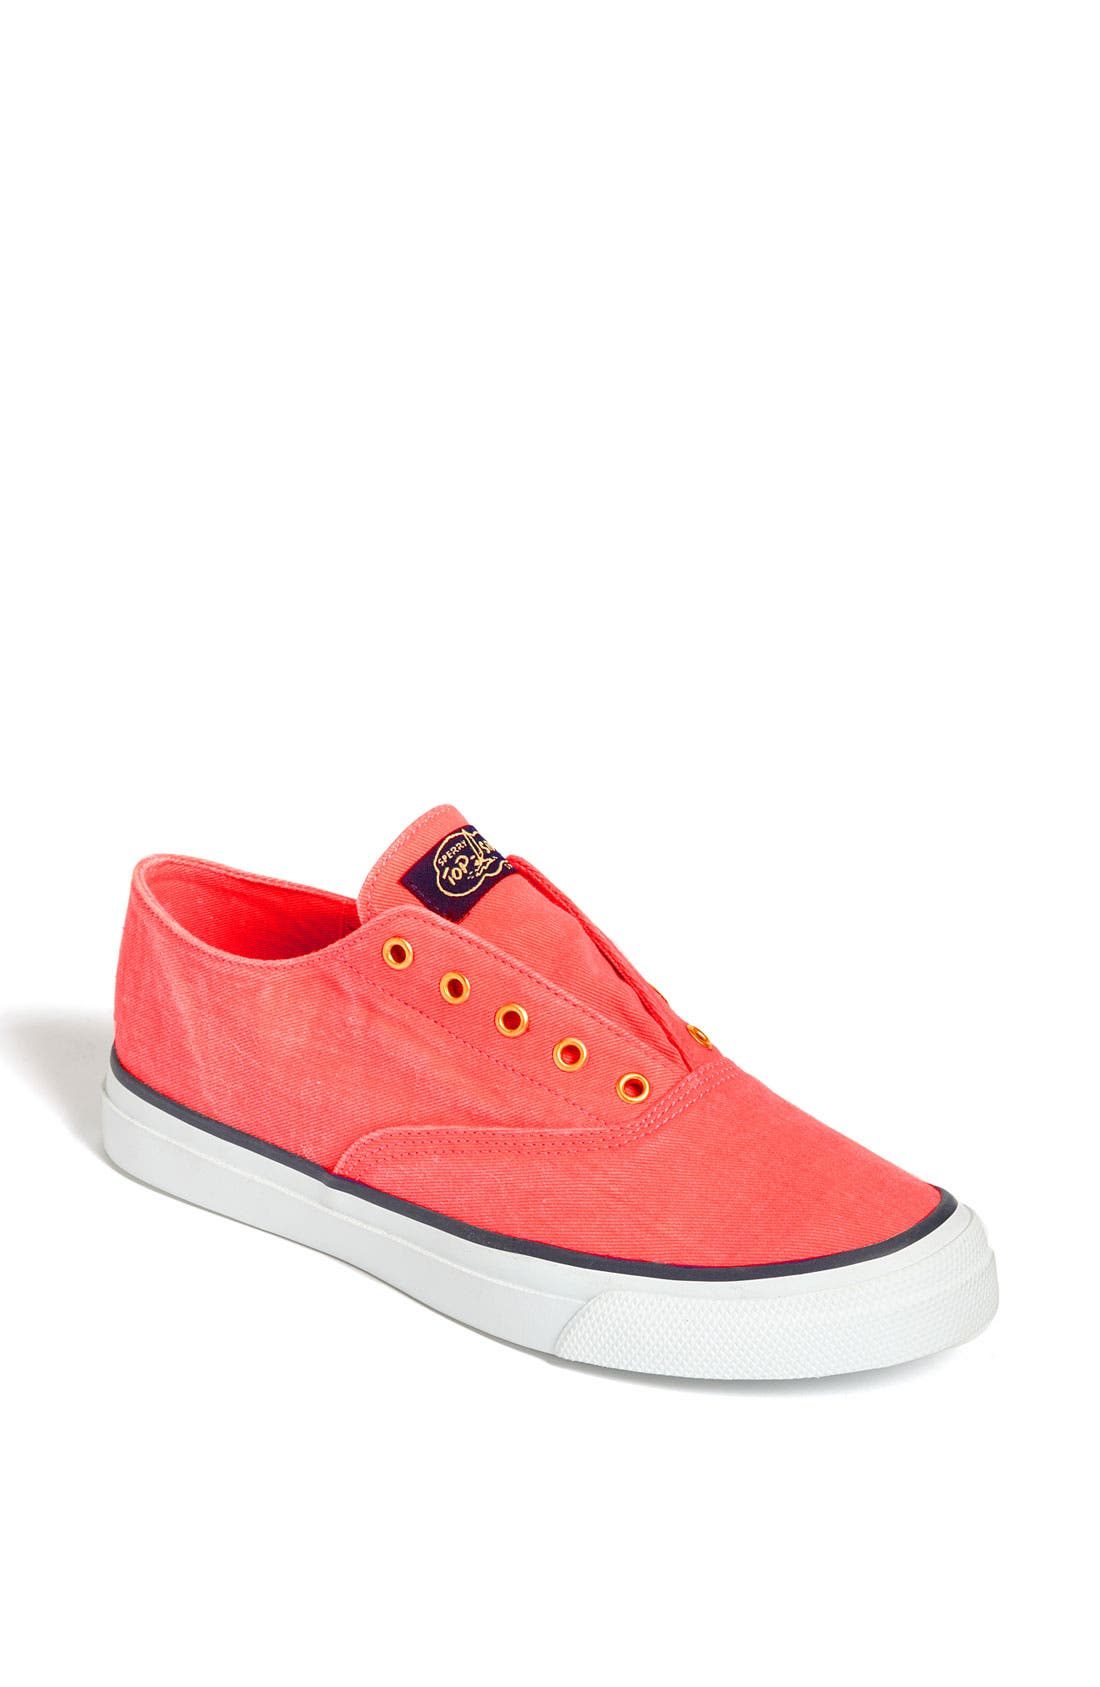 Main Image - Milly for Sperry Top-Sider® Sneaker